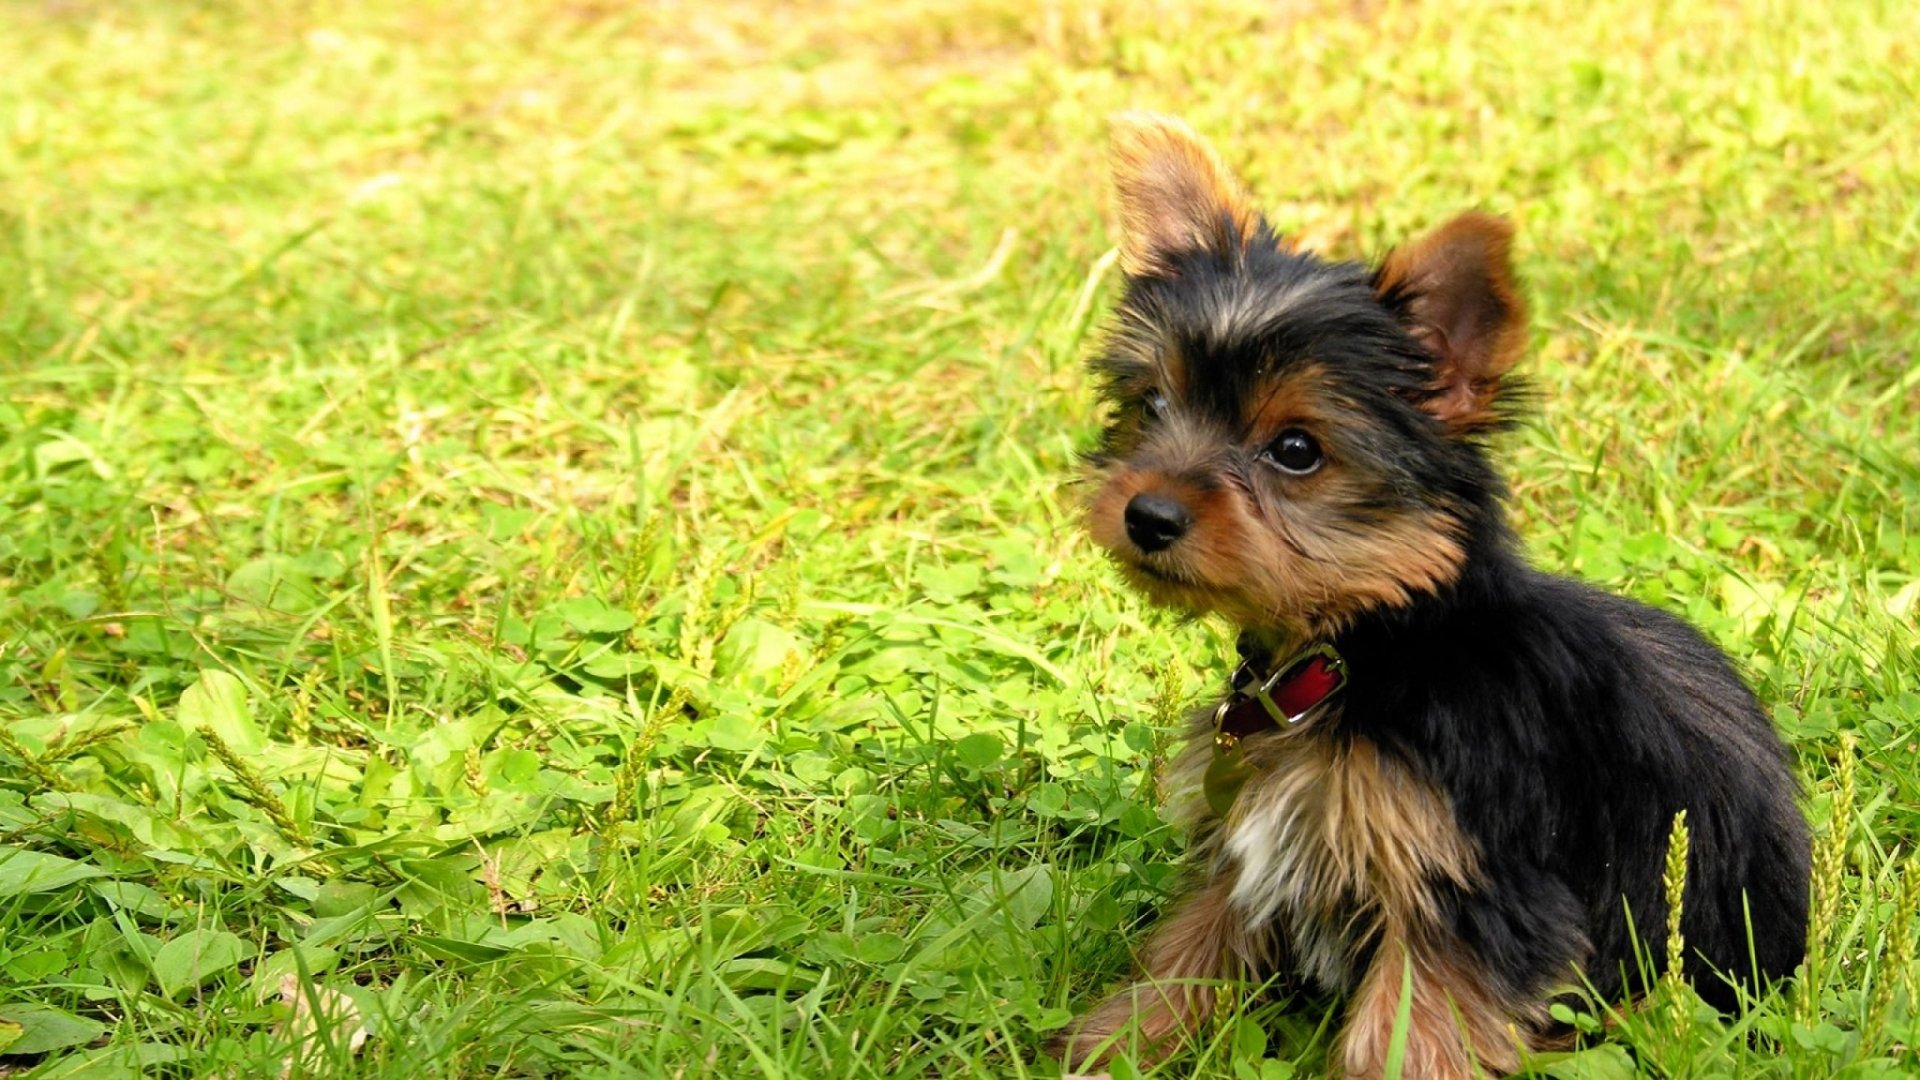 Animal - Yorkshire Terrier  Dog Puppy Cute Animal Pet Wallpaper